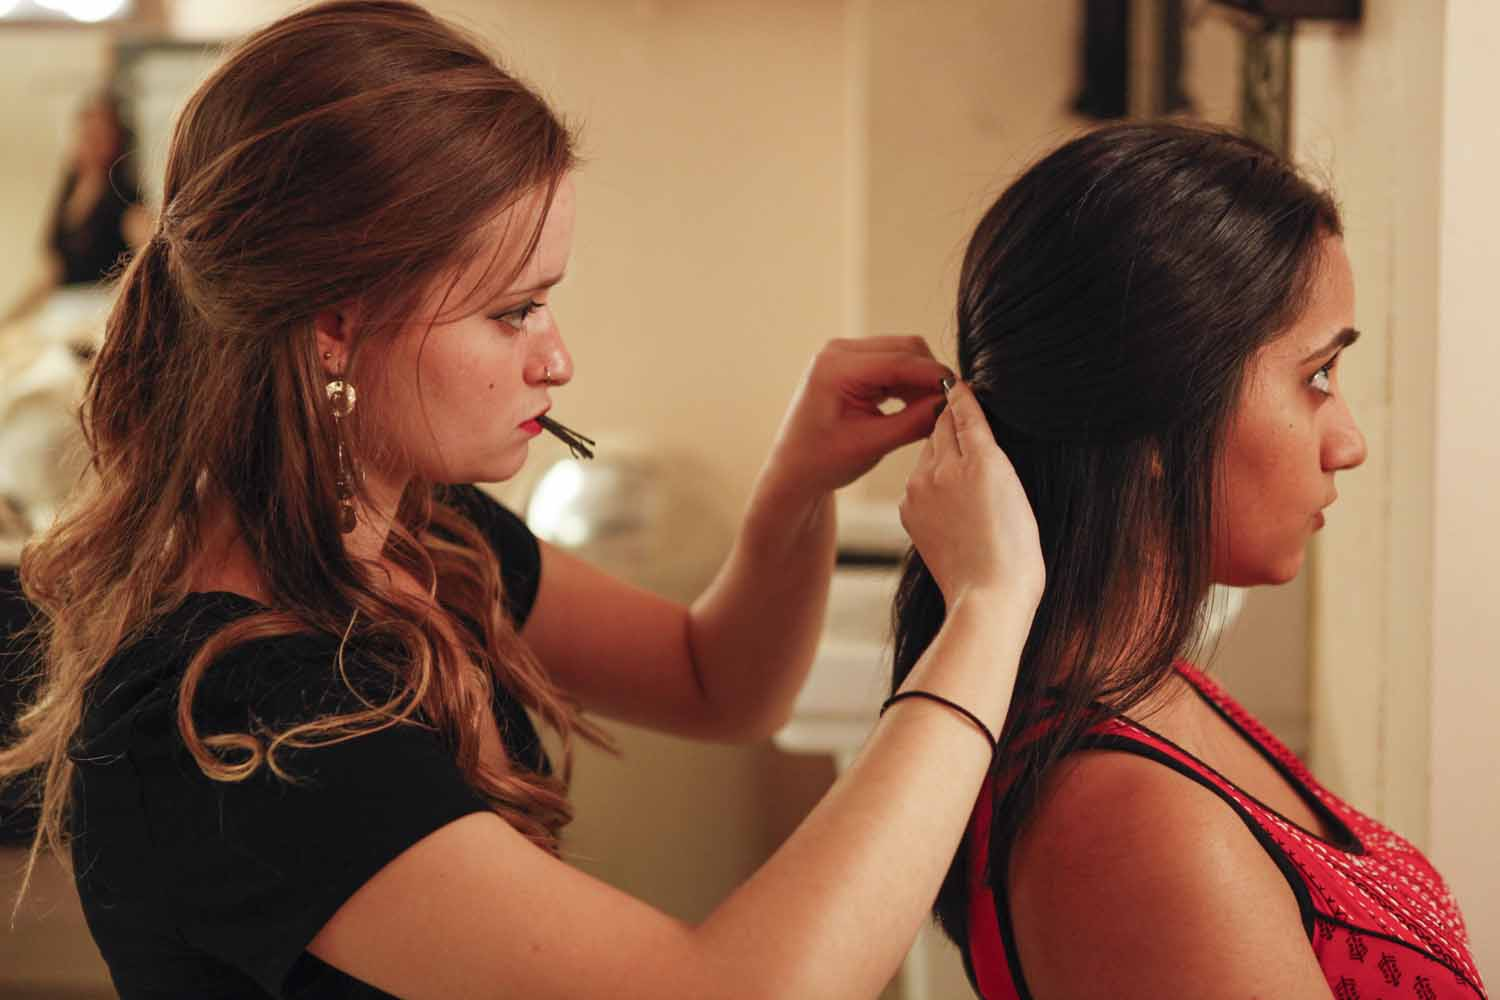 Paige Kiehl helps fellow Mizzou Masti member Sumidha Katti pin her hair back in the dressing room before their performance during the second act of India Nite at Jesse Hall.